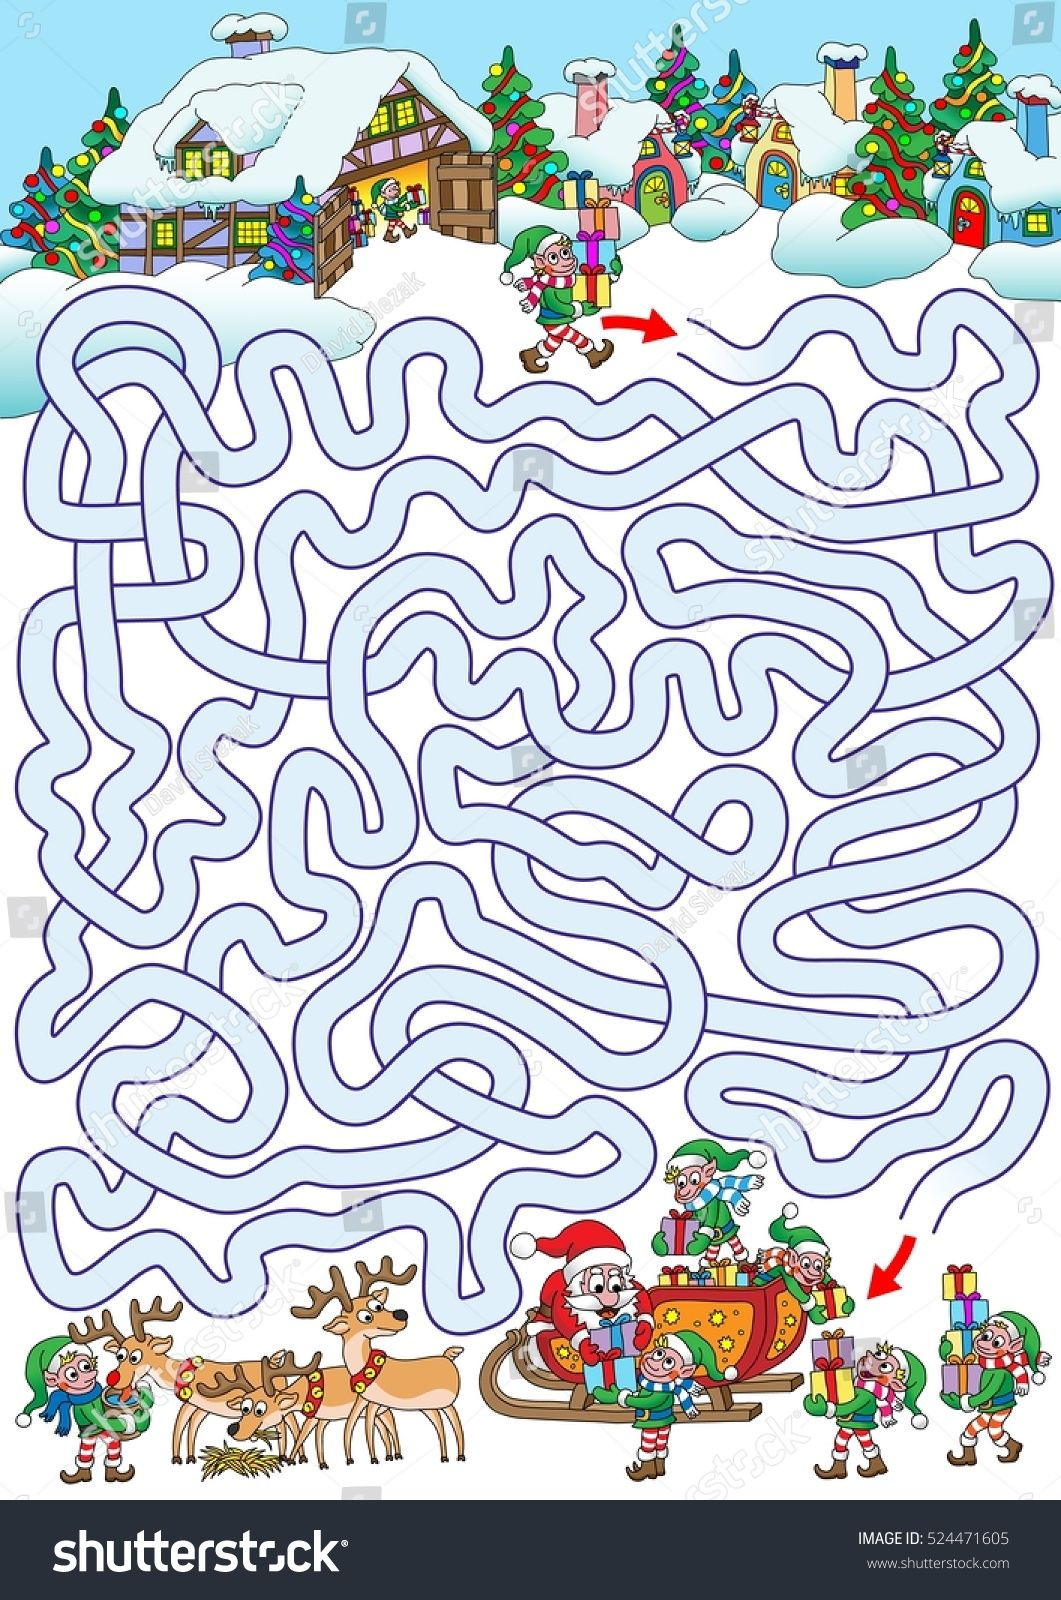 Pin By Rahm On Maze Games